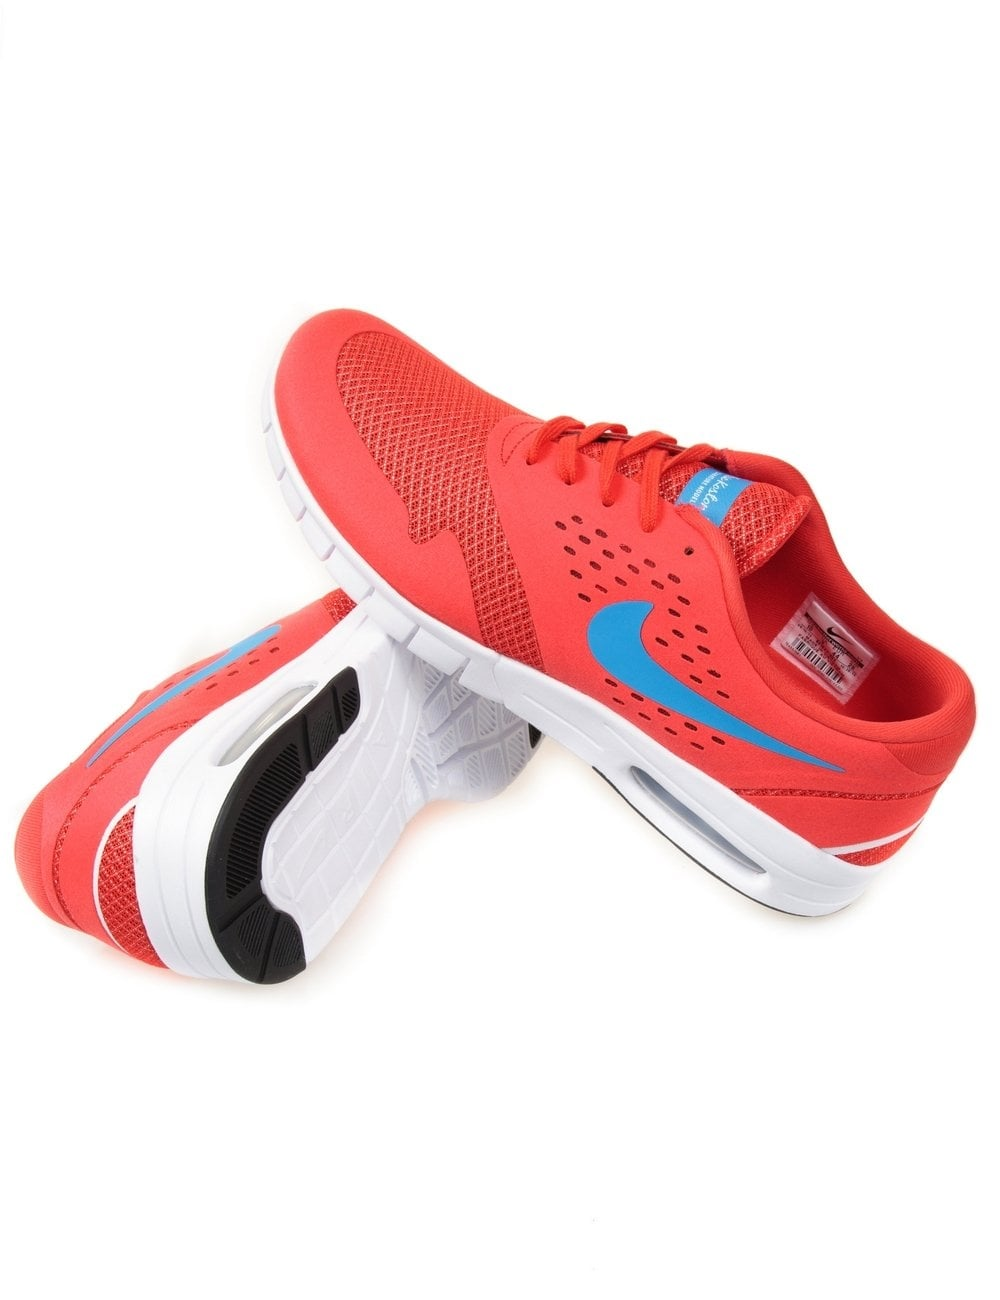 nike sb eric koston 2 max light crimson nike sb from. Black Bedroom Furniture Sets. Home Design Ideas